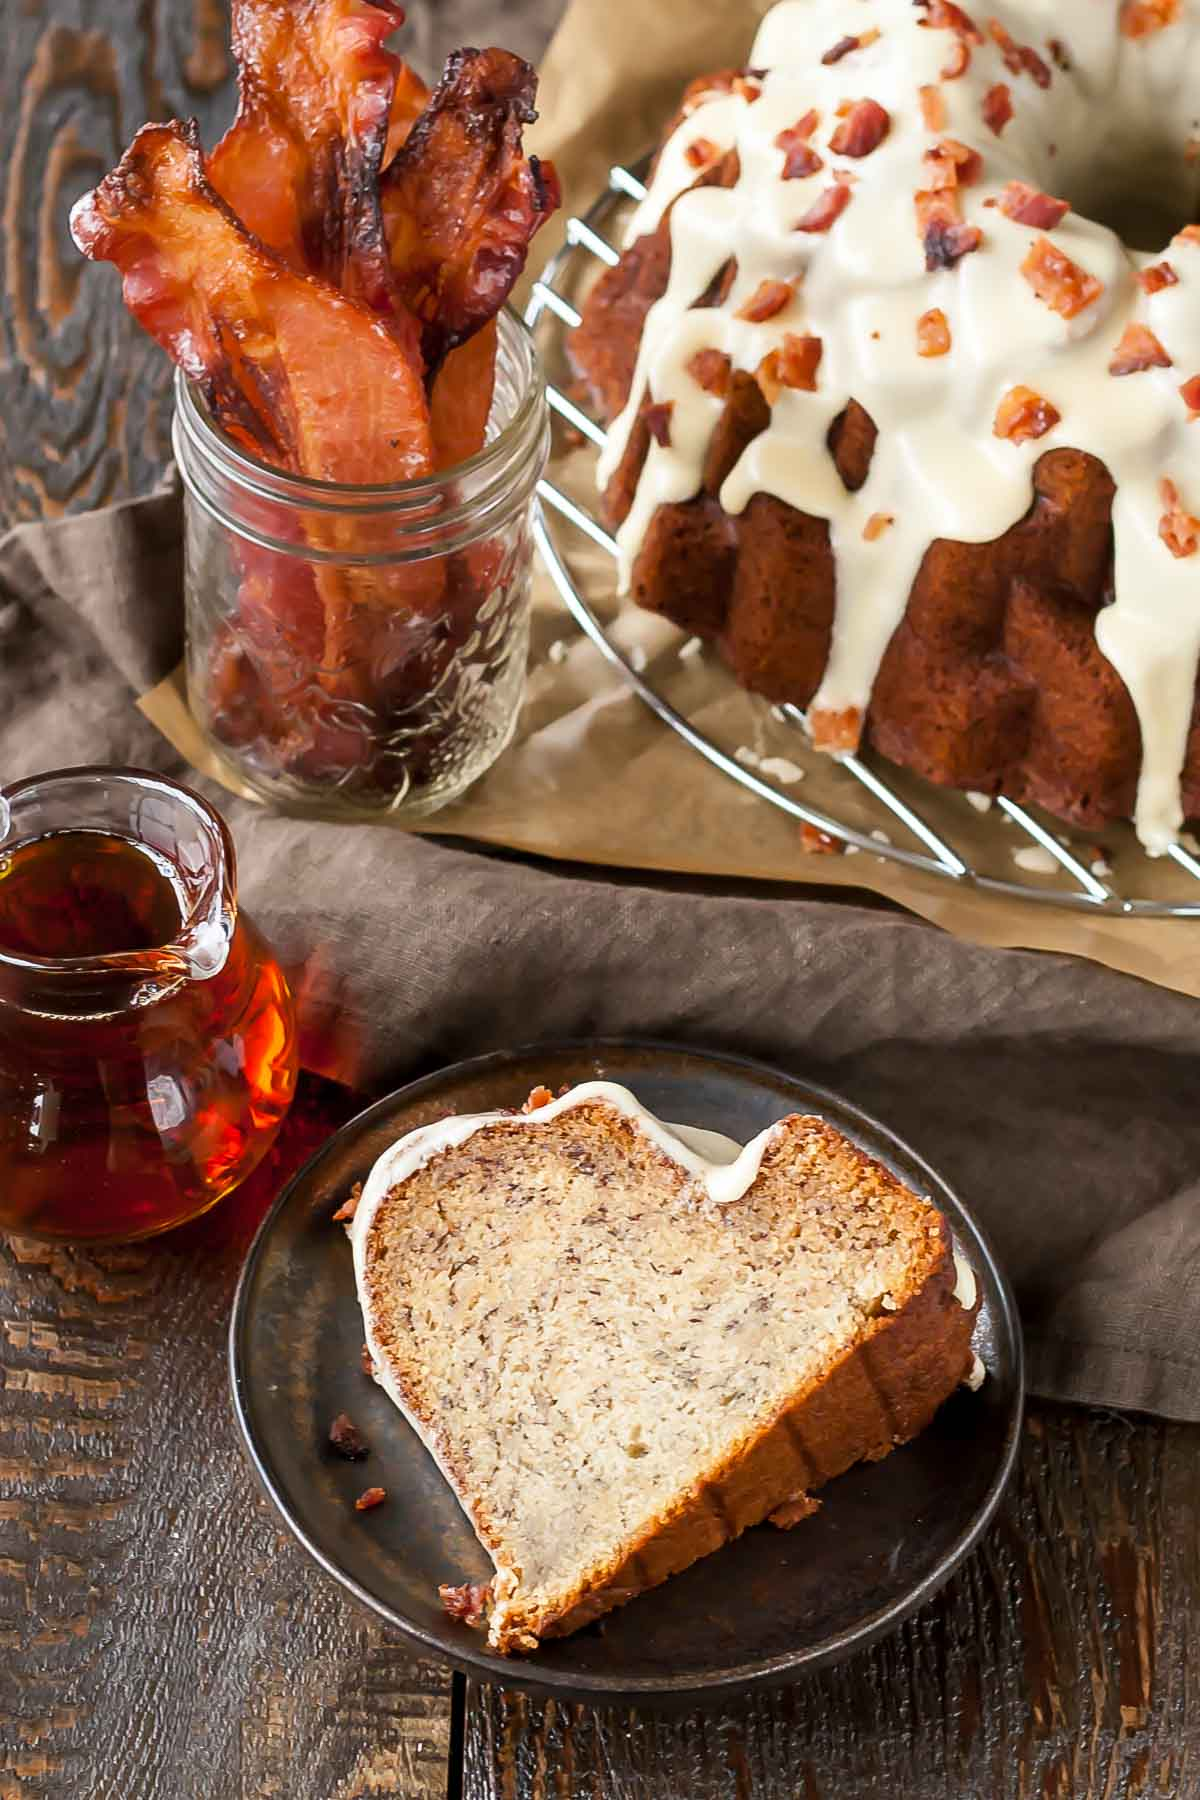 Banana Bacon Bundt Cake. Your favourite breakfast flavours in one delicious cake! Banana cake with a maple sugar glaze topped with chopped candied bacon. | livforcake.com